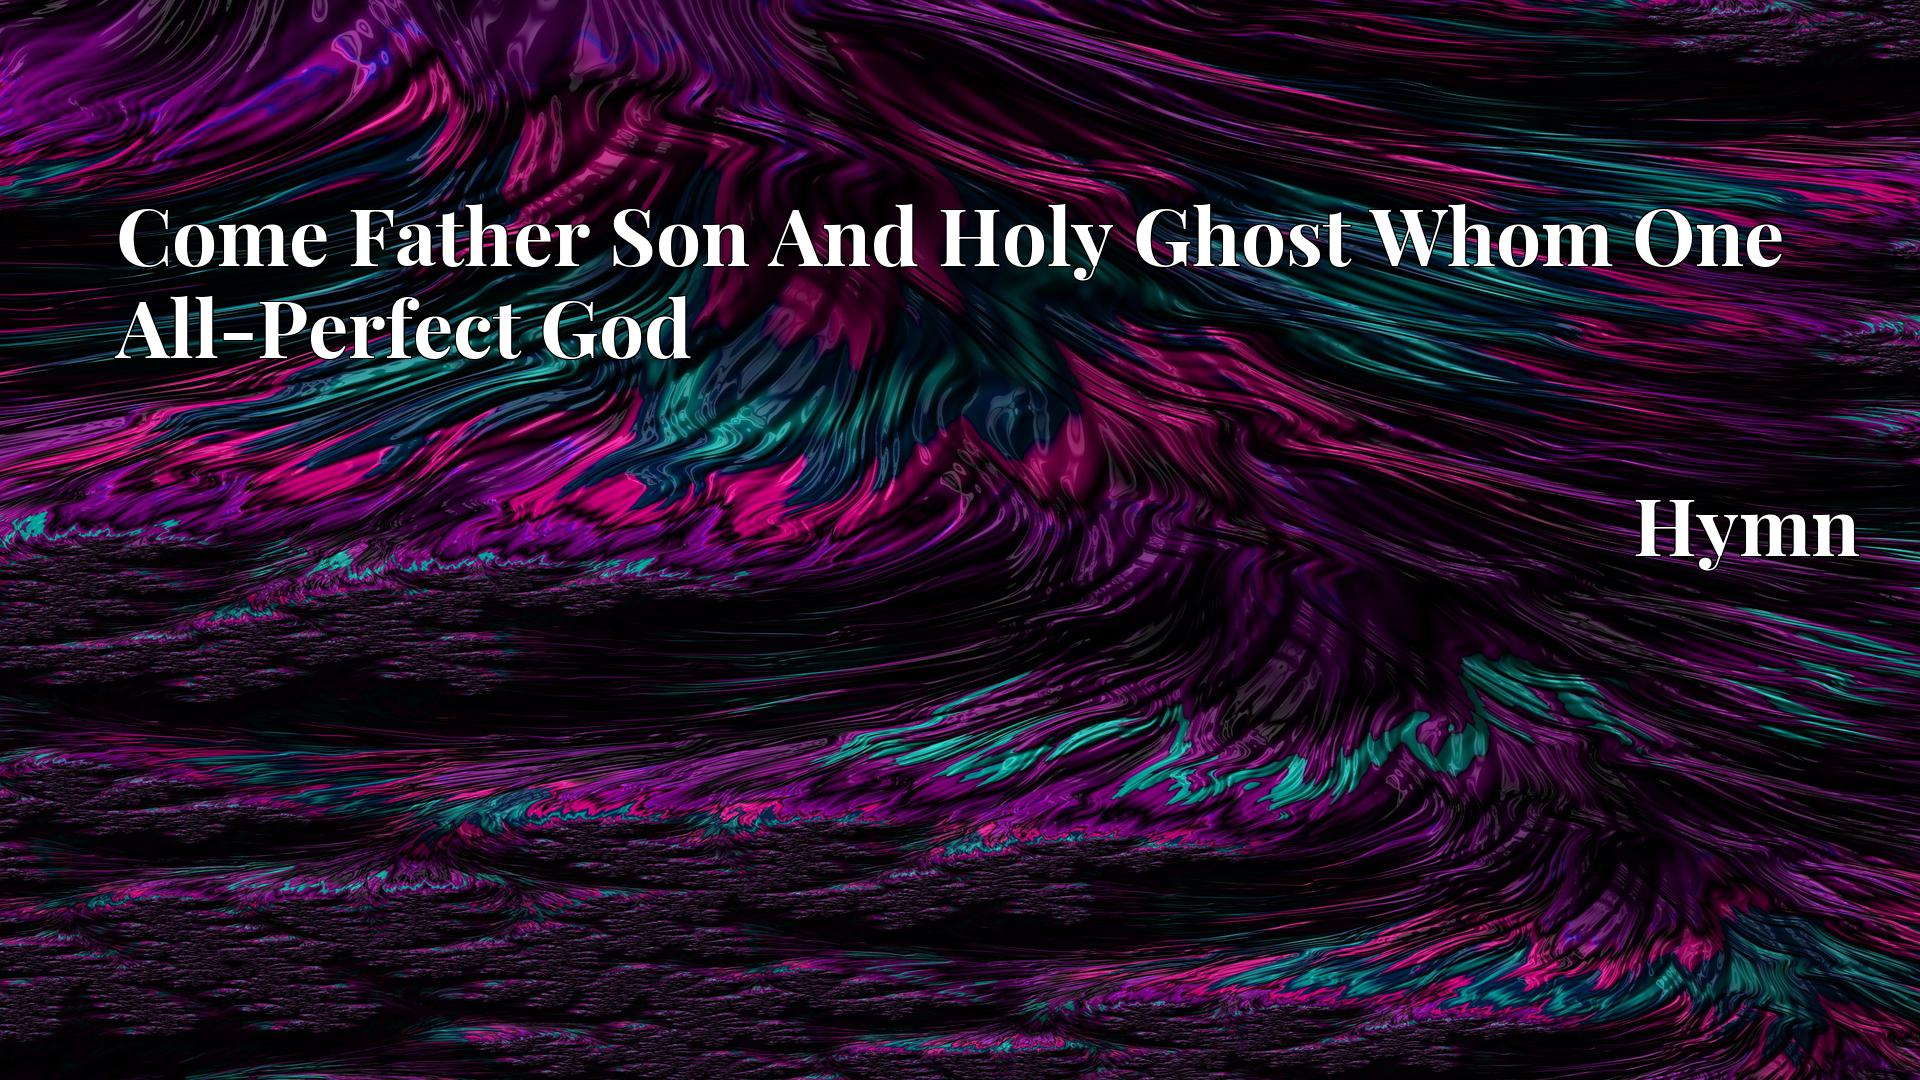 Come Father Son And Holy Ghost Whom One All-Perfect God - Hymn